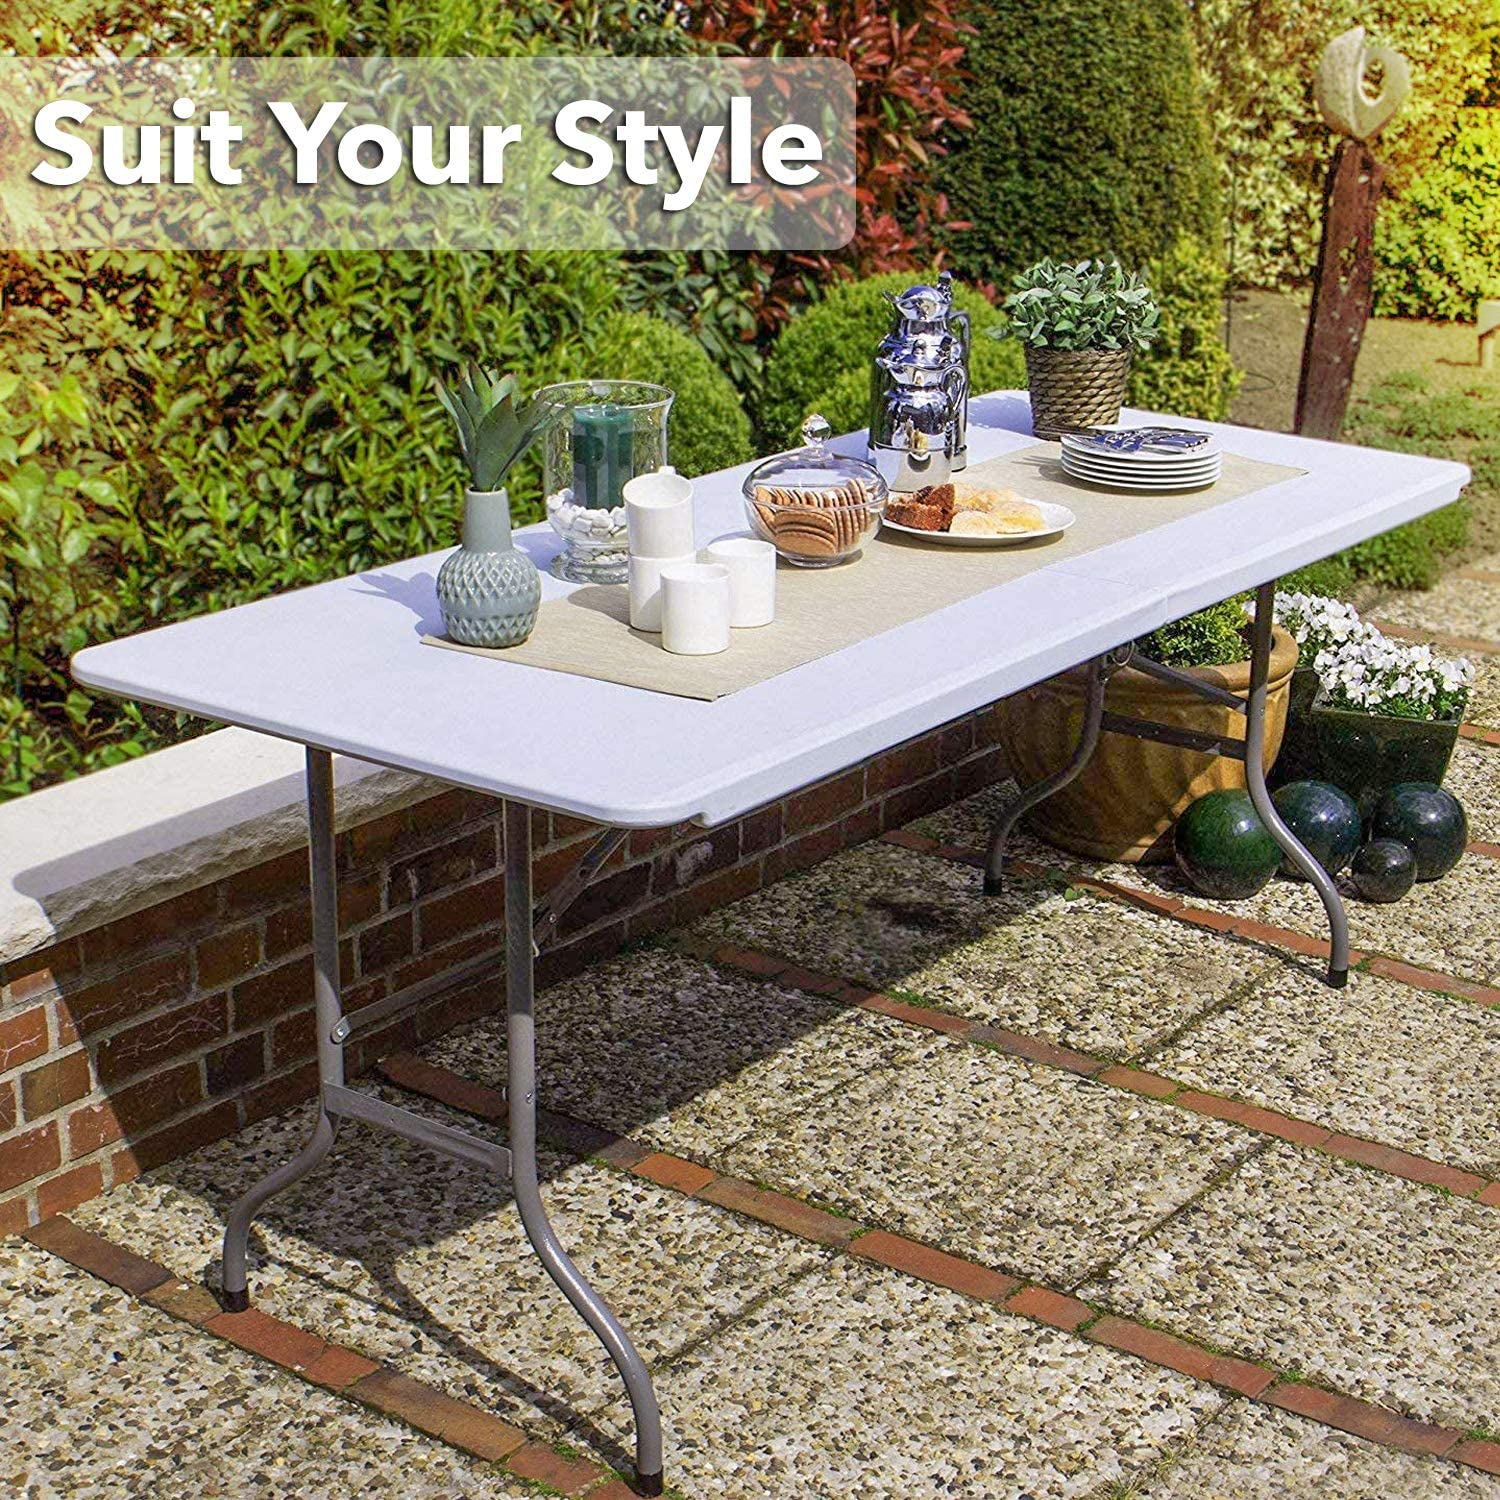 Table de jardin pliante en plastique MaxxGarden